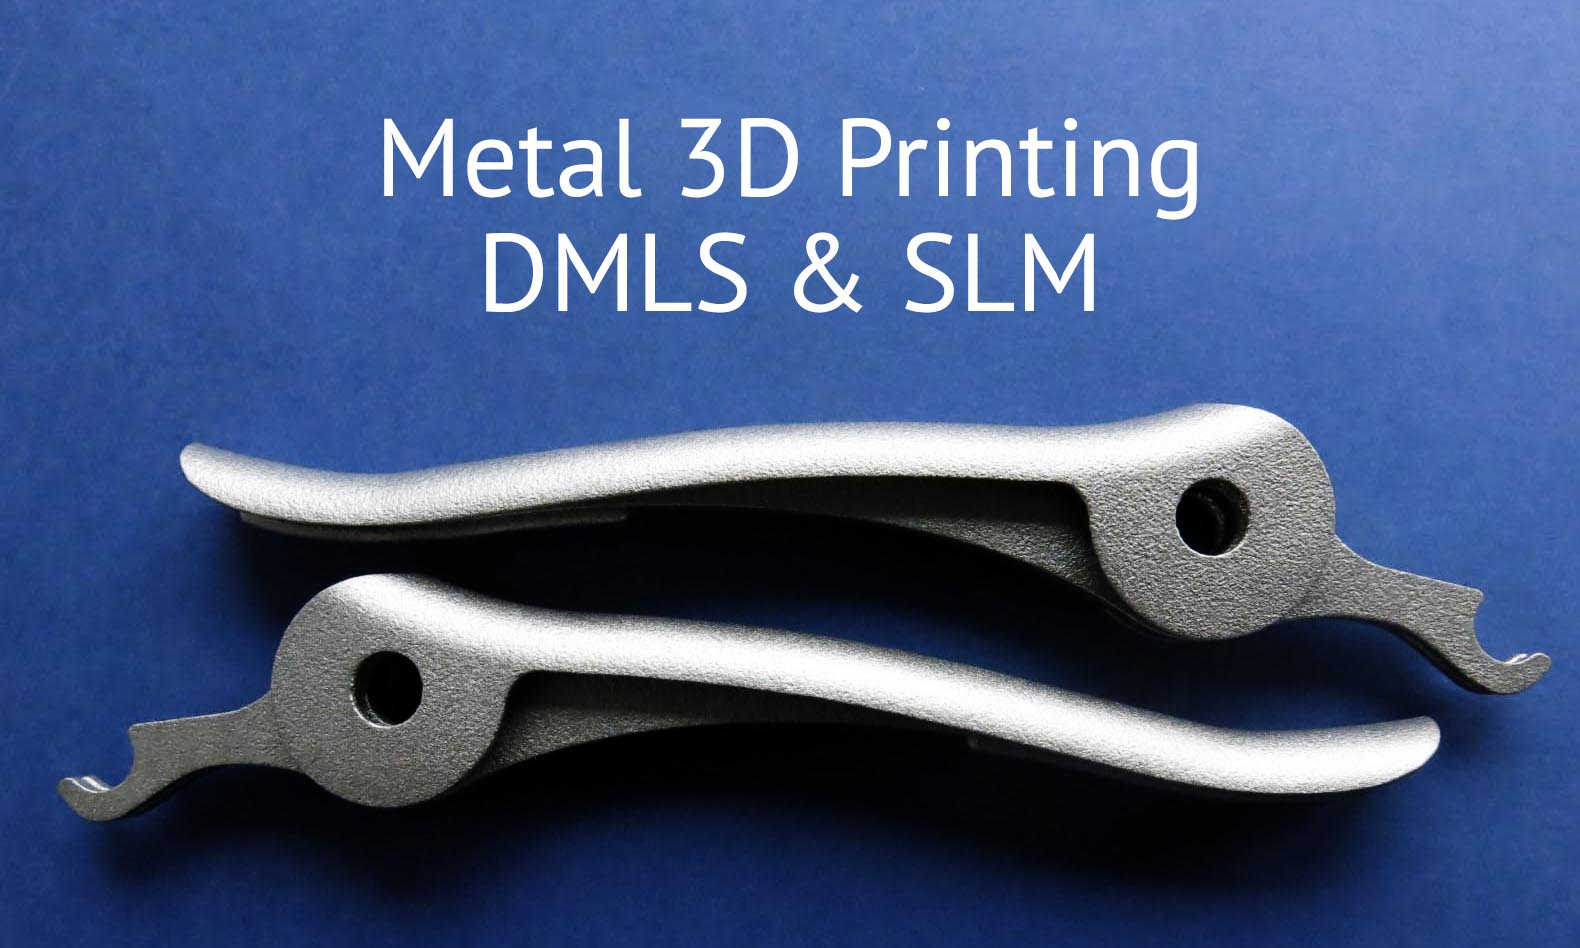 Metal 3D printing in SLM & DMLS: our new offer in 7 questions